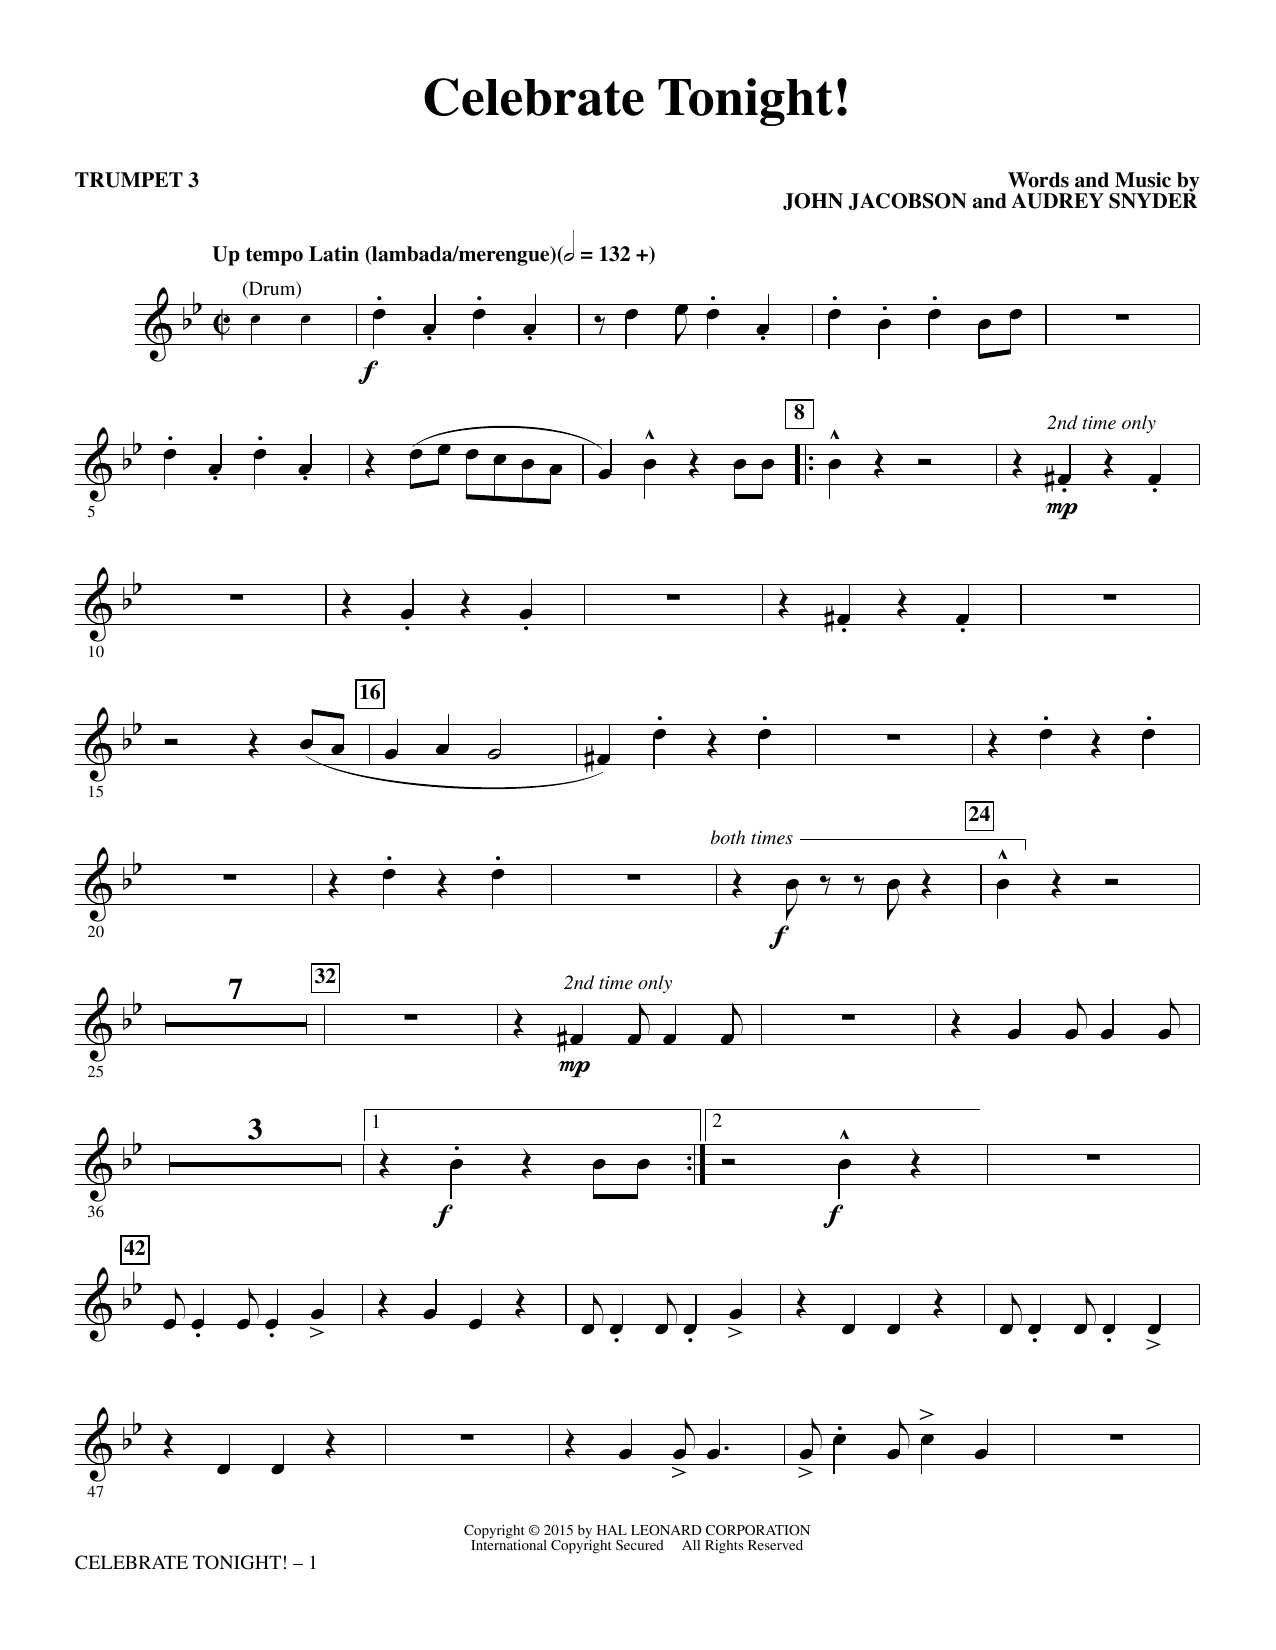 John Jacobson Celebrate Tonight! - Trumpet 3 sheet music notes and chords. Download Printable PDF.